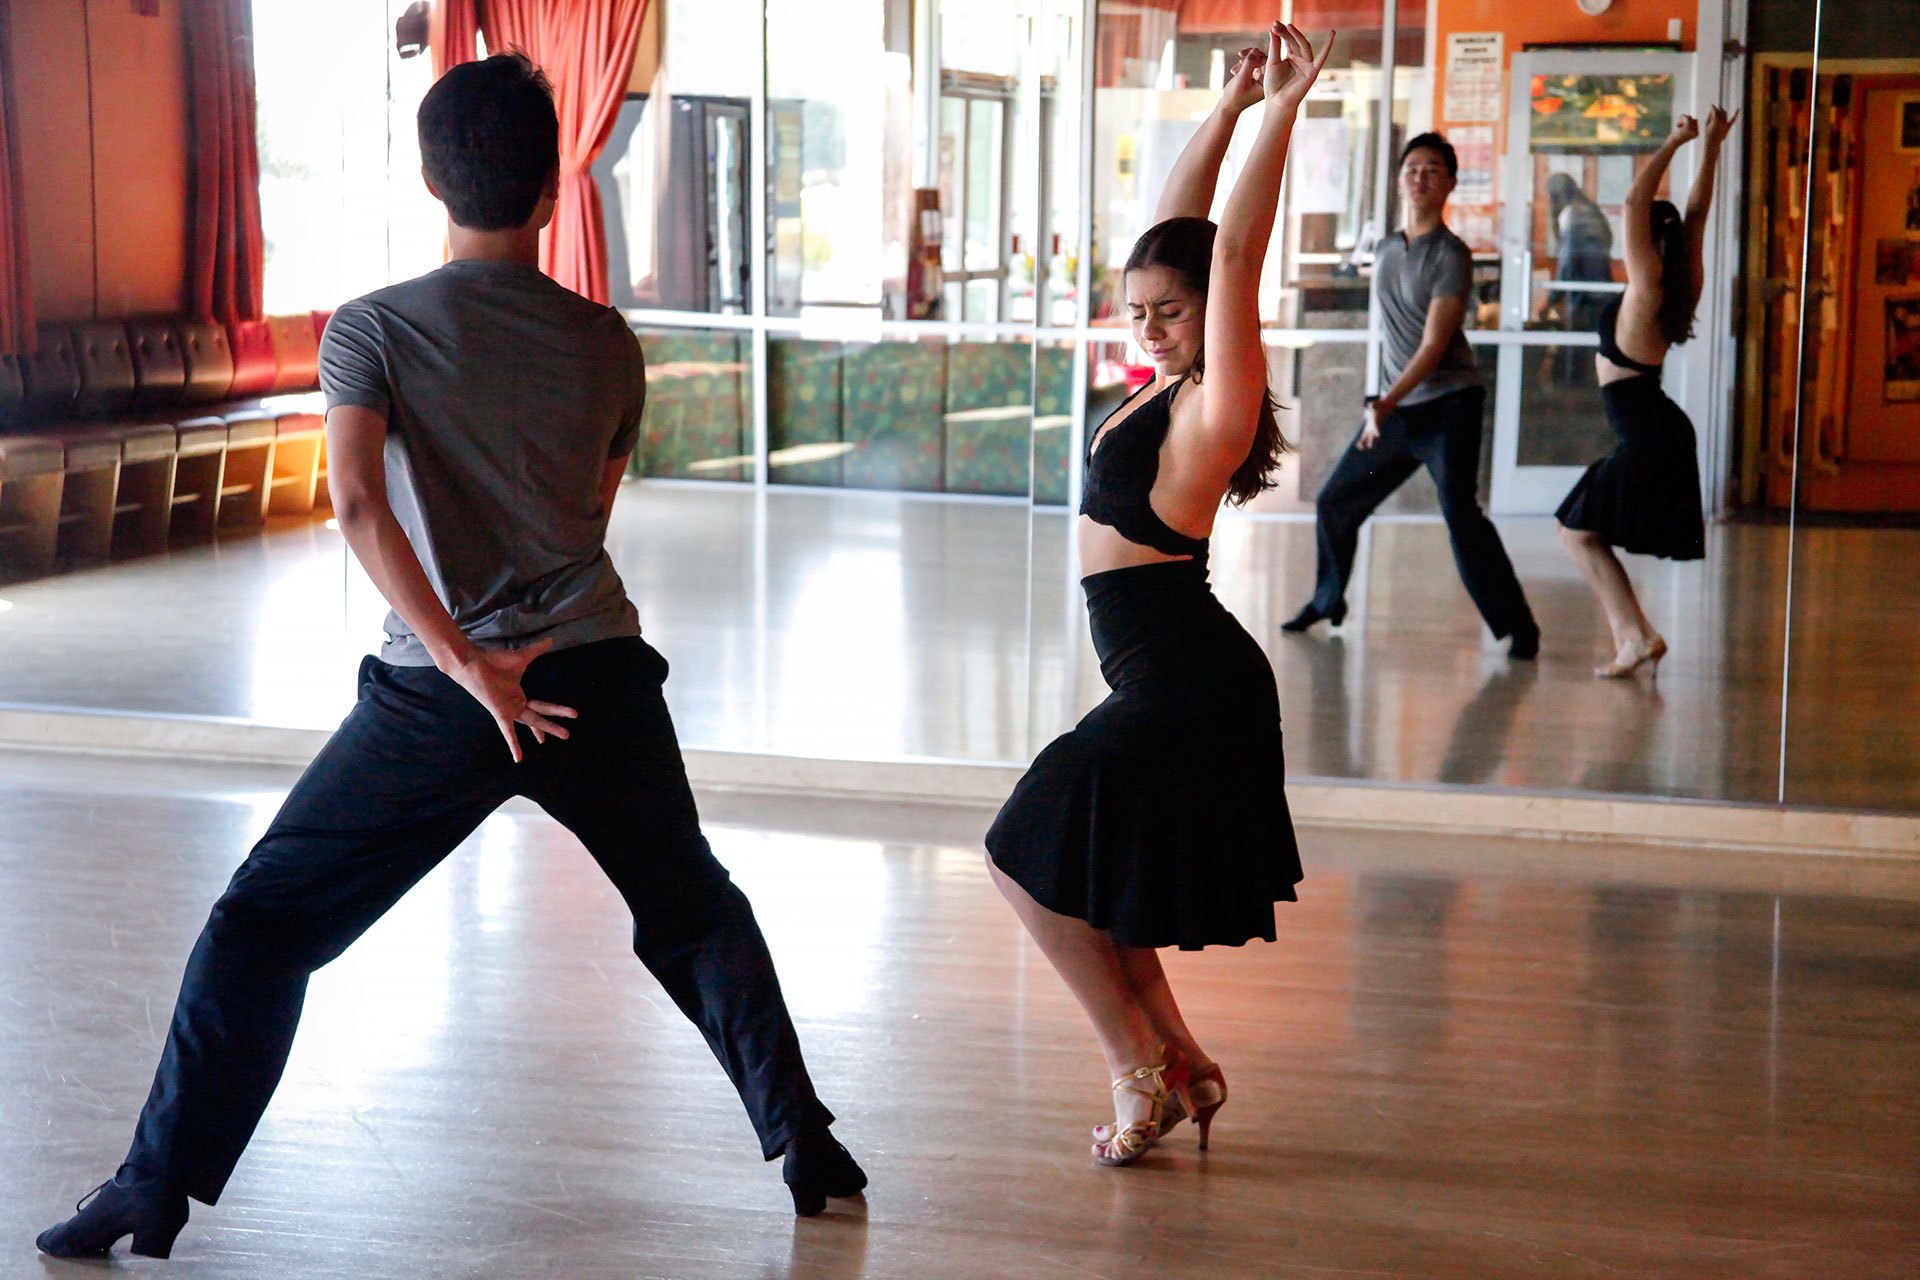 Bumchin Tegshjargal started dancing with his partner. Michelle Klets, a year and a half ago. In that short time, they've become one of the country's top young couples in Latin dance.